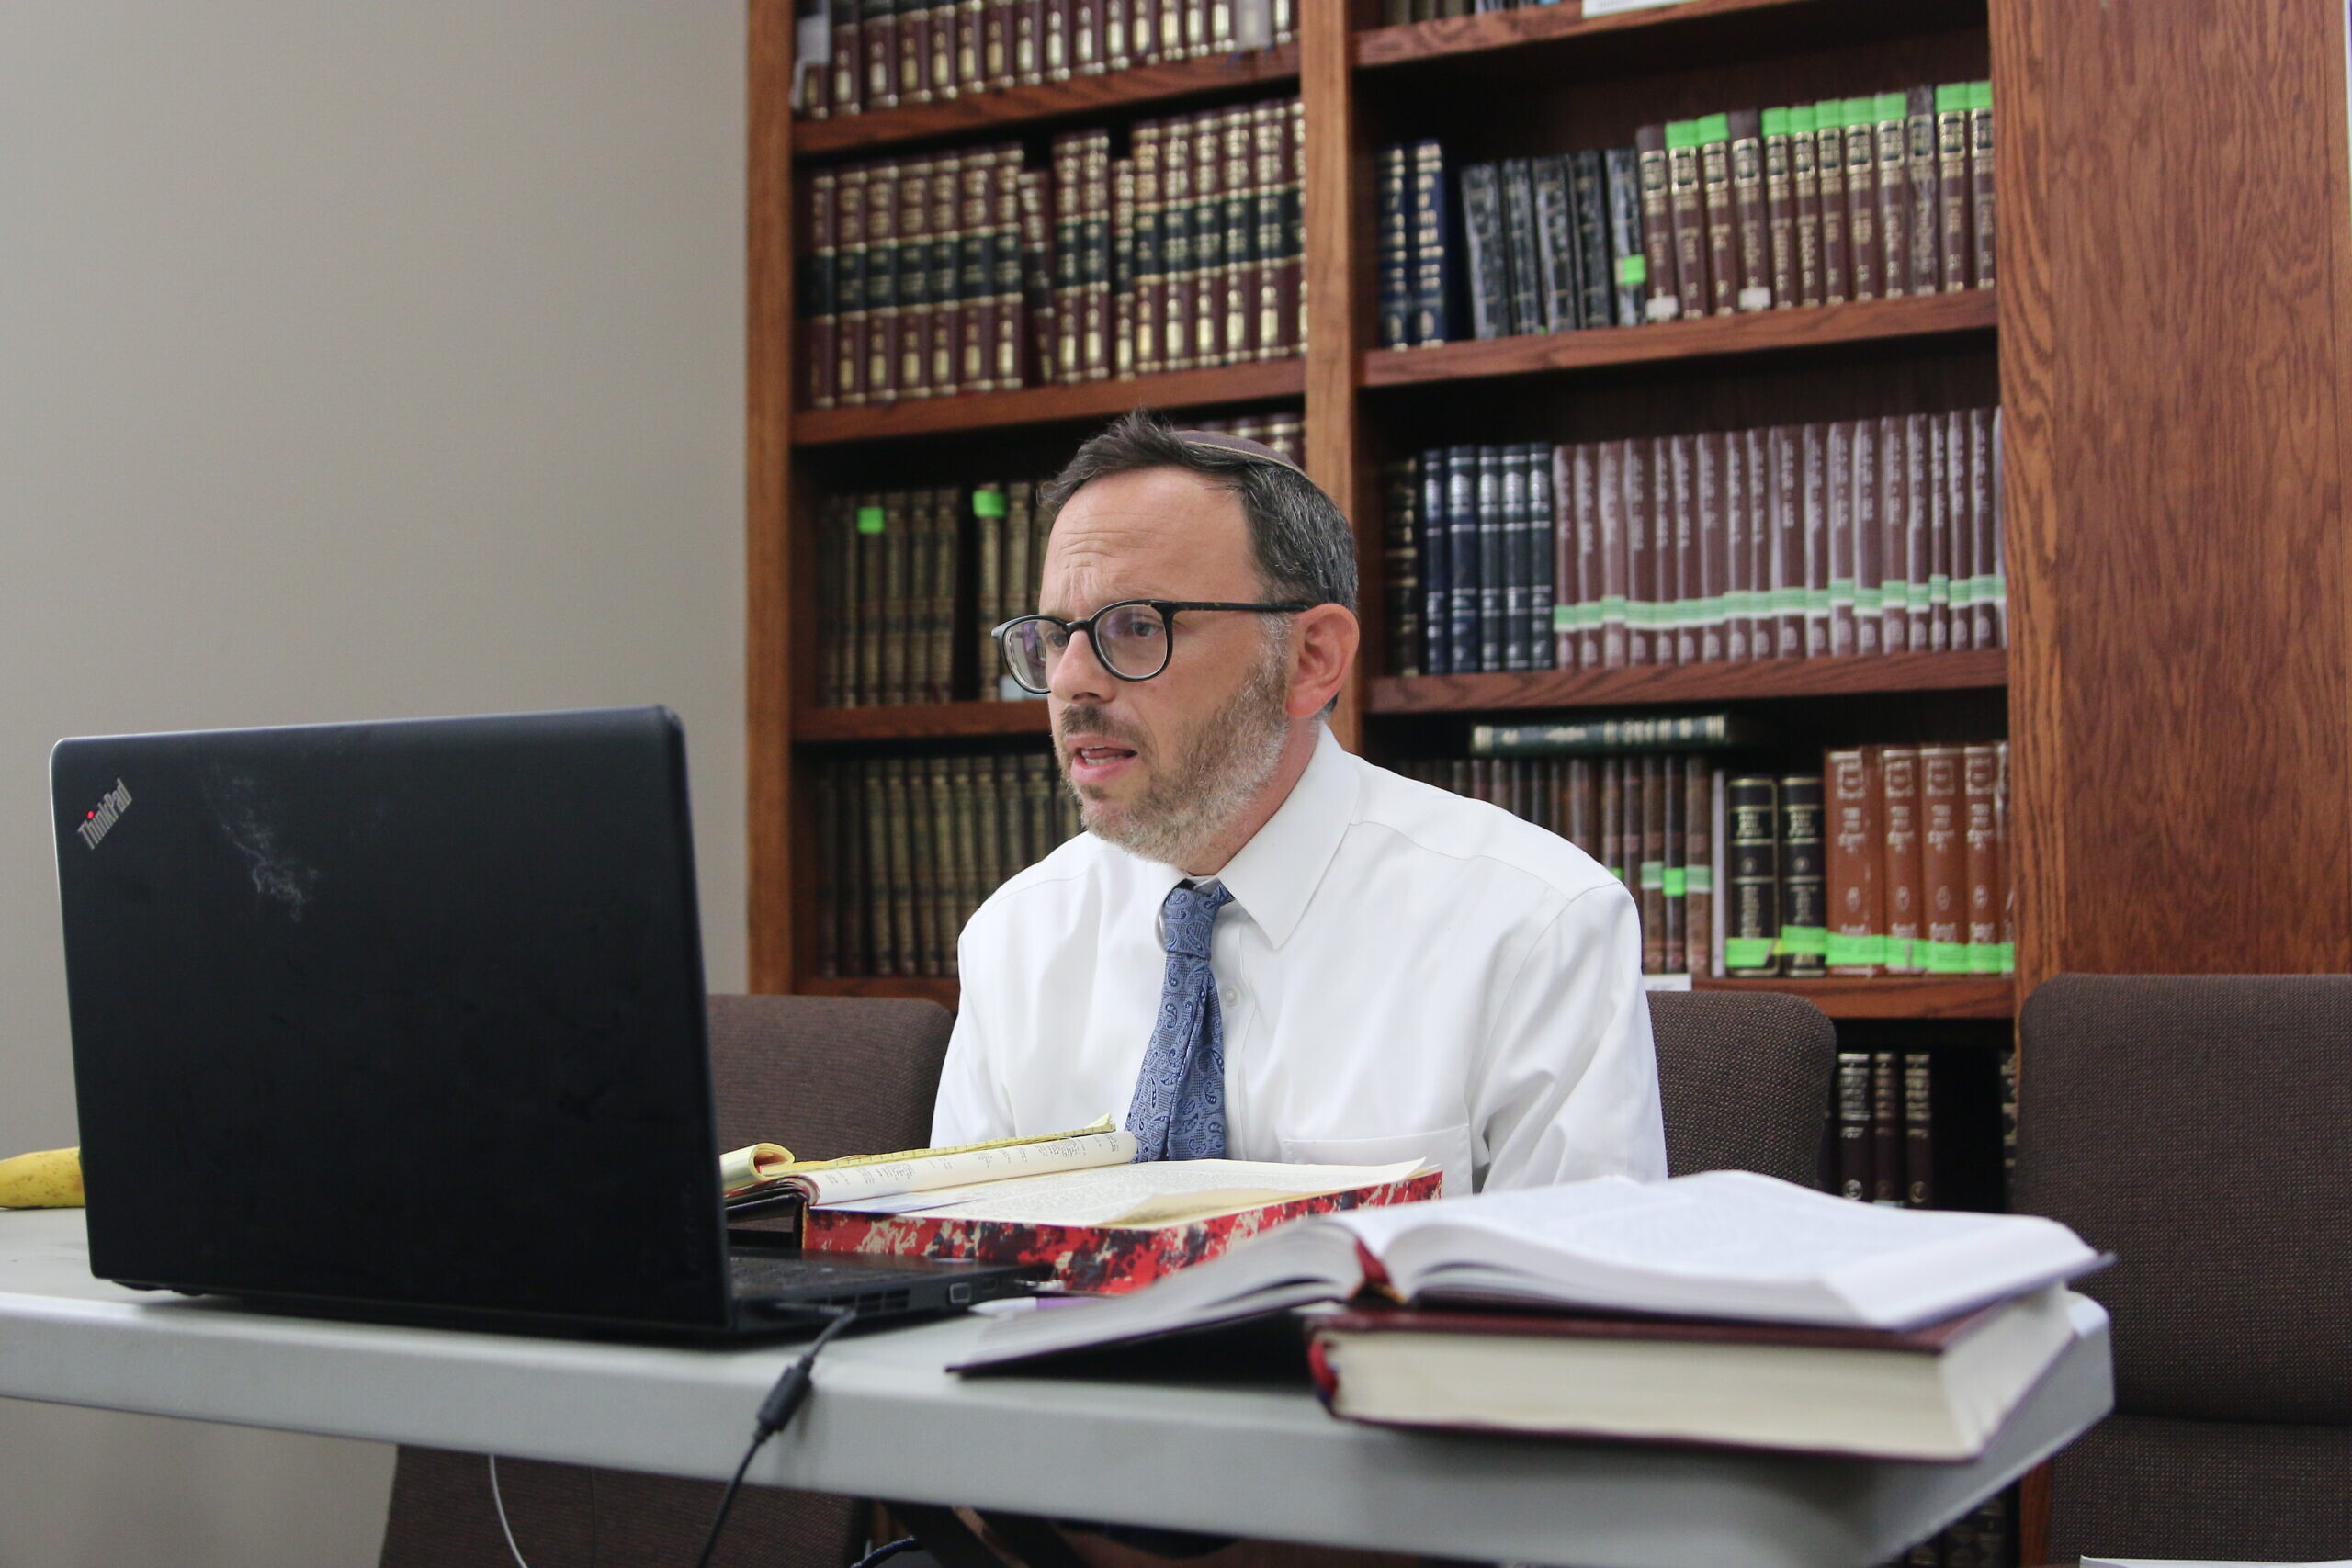 Rabbi Starr Joins Aja Staff Atlanta Jewish Times